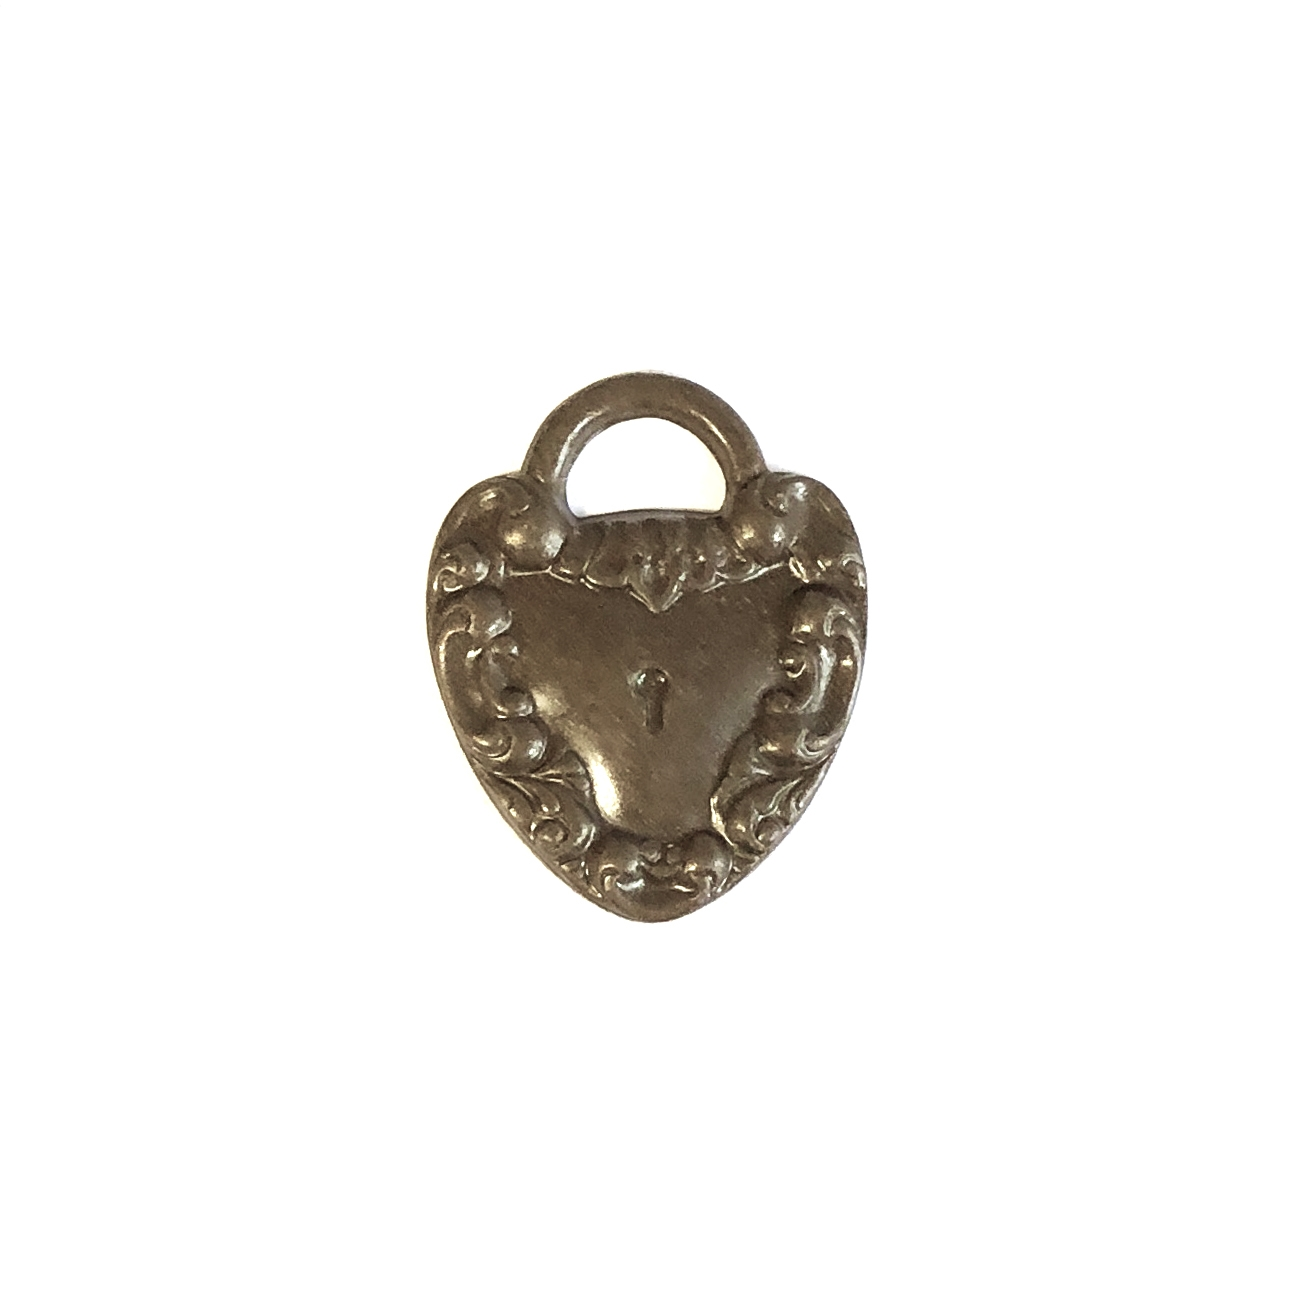 heart and key charm, heart. charm, chocolate brass, locket, key, heart charm, stamping, victorian, victorian heart, lock motif, brass hearts, 20mm, US made, nickel free, jewelry findings, jewelry making, vintage supplies, 09955